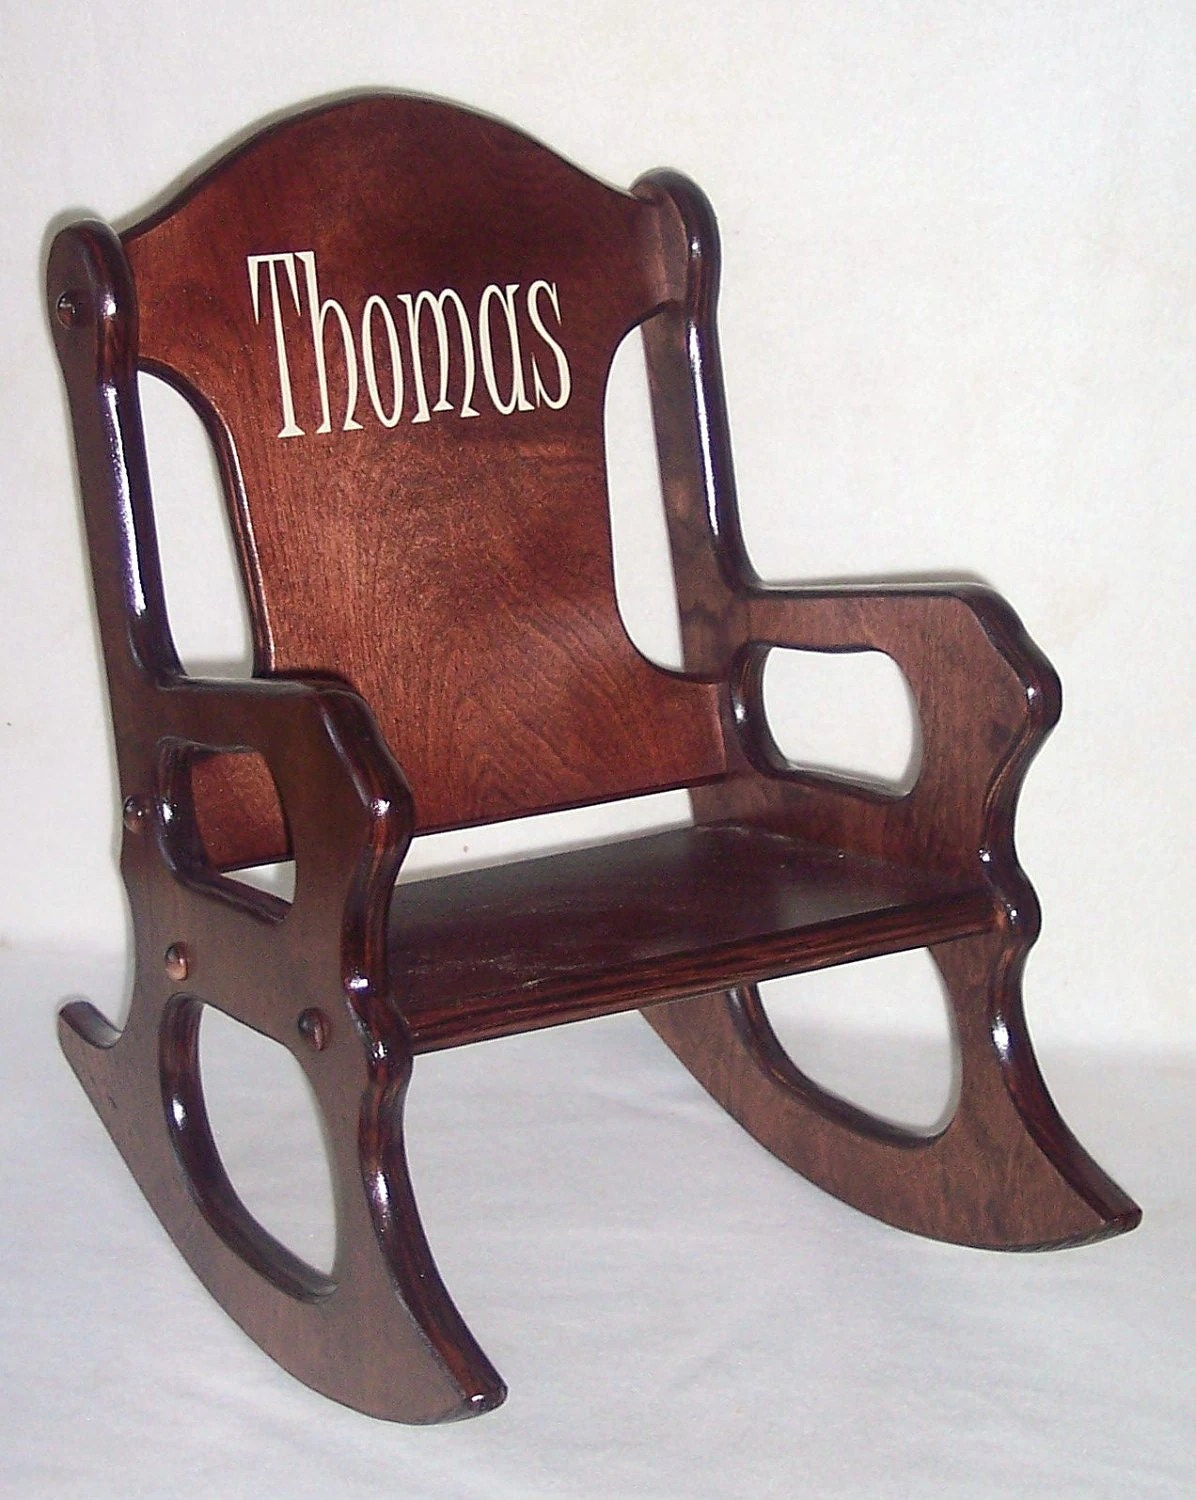 Childrens Rocking Chair Wooden Kids Rocking Chair Personalized Cherry Finish